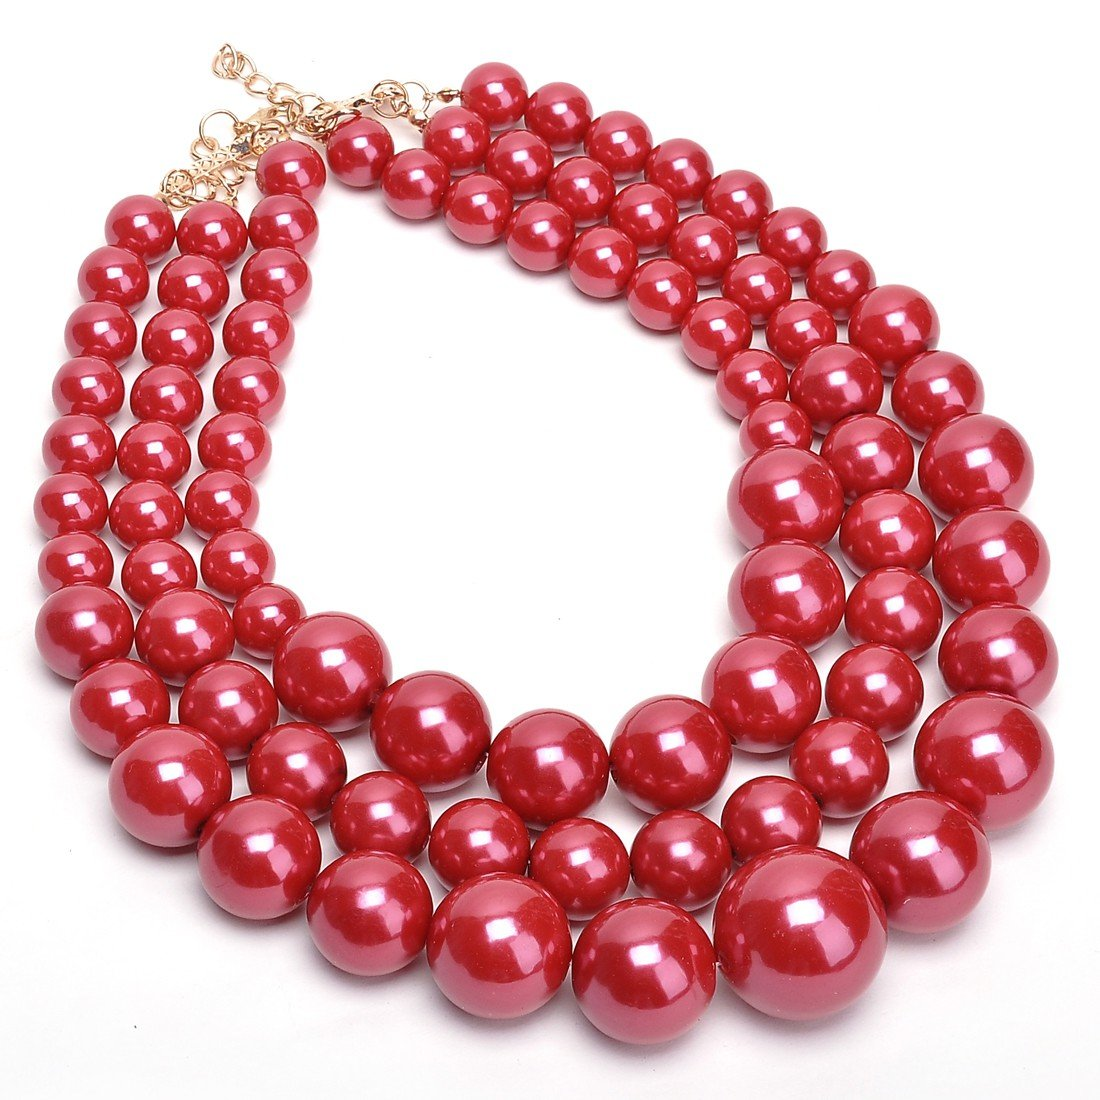 Fashion Resin Big Simulated Pearls Multi Strand 3 Layer Collar Evening Necklace Jerollin N0009513